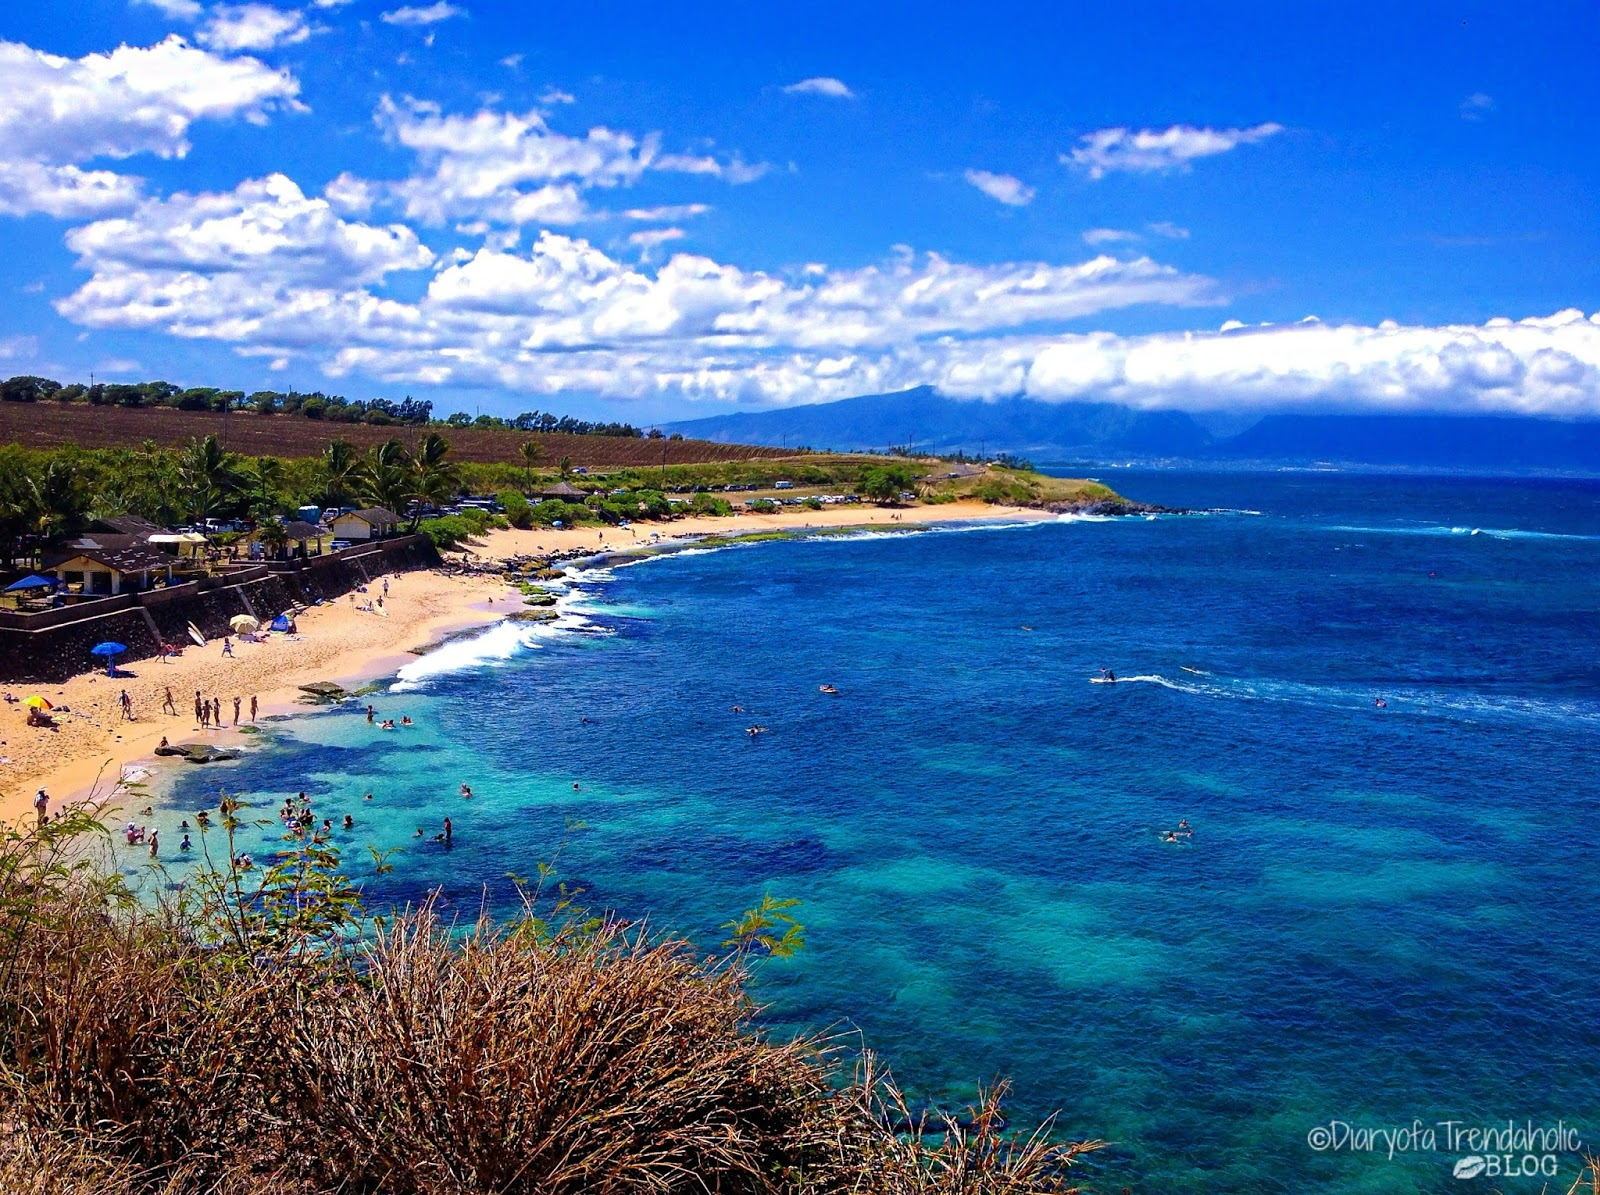 Diary of a Trendaholic : Hawaii: Photos, Travel & Tourism